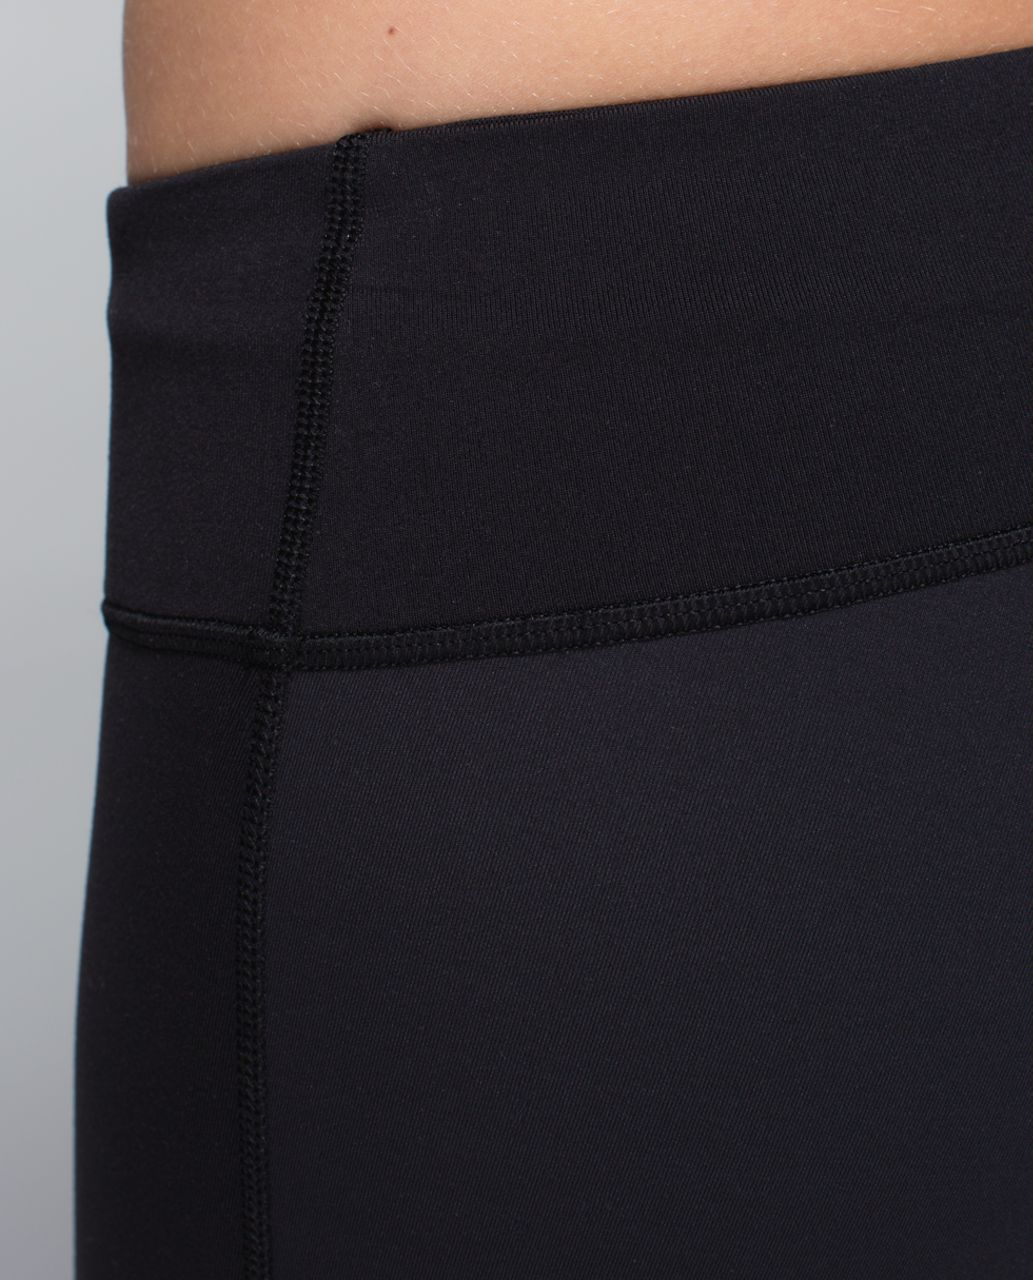 Lululemon Journey Crop - Black